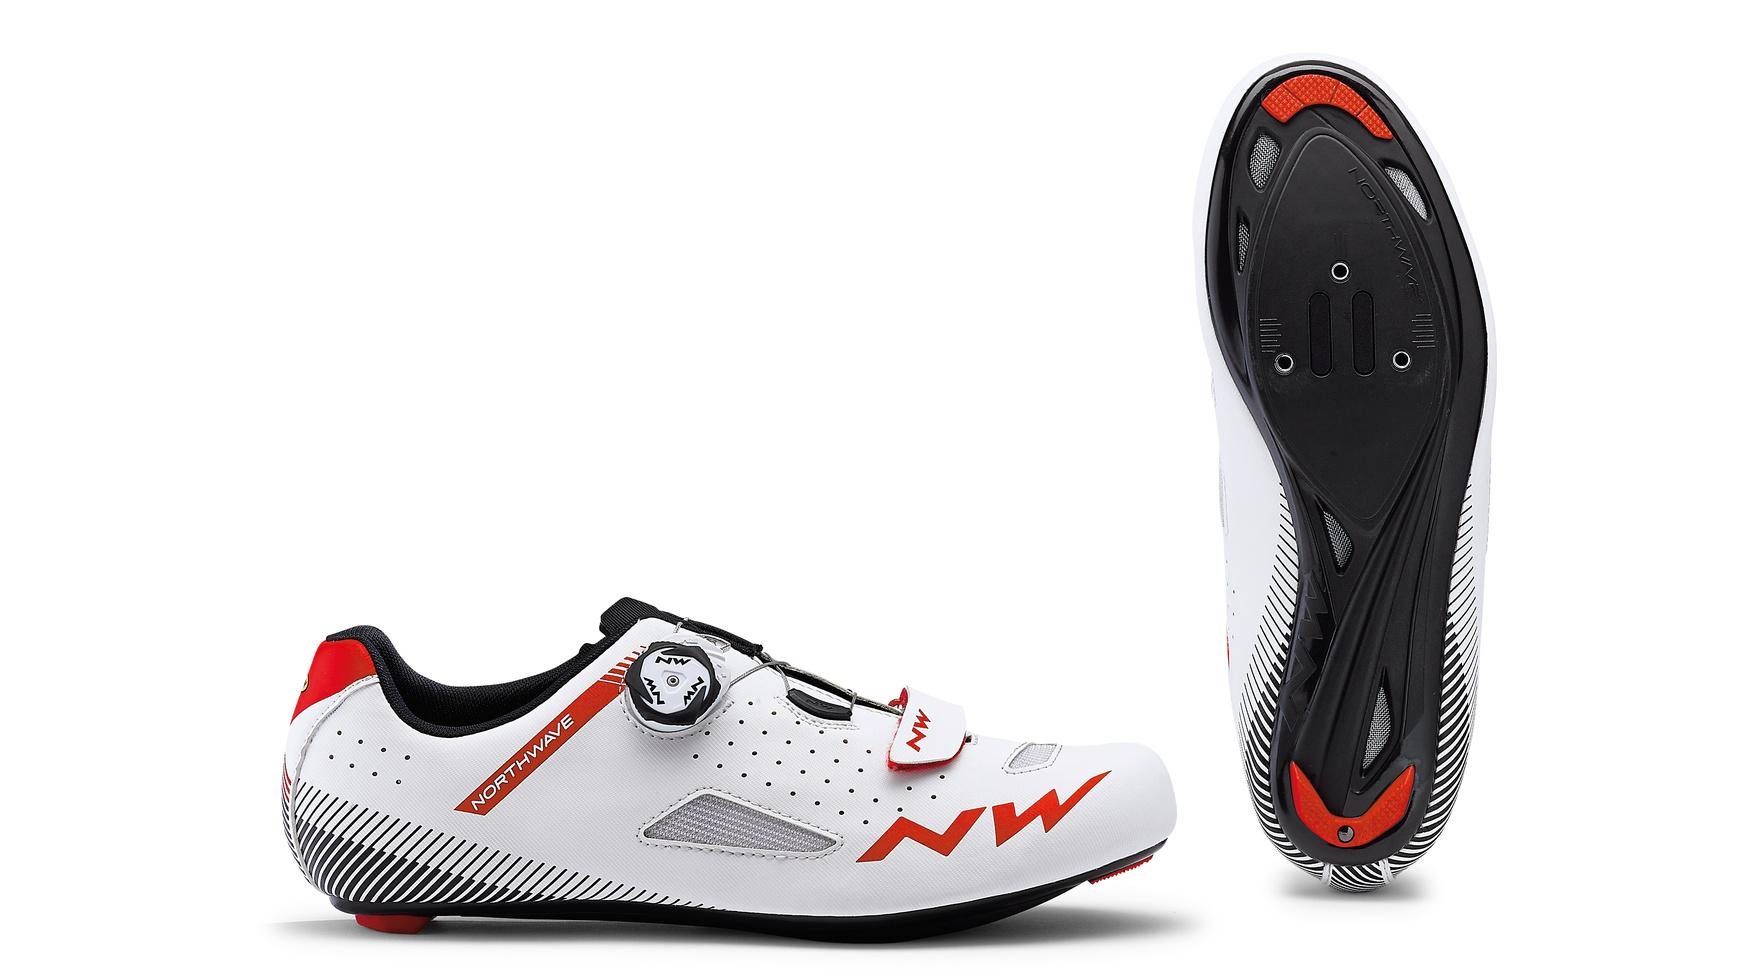 Afbeelding Northwave Race fietsschoenen Heren Wit Rood /  CORE PLUS WHITE/RED